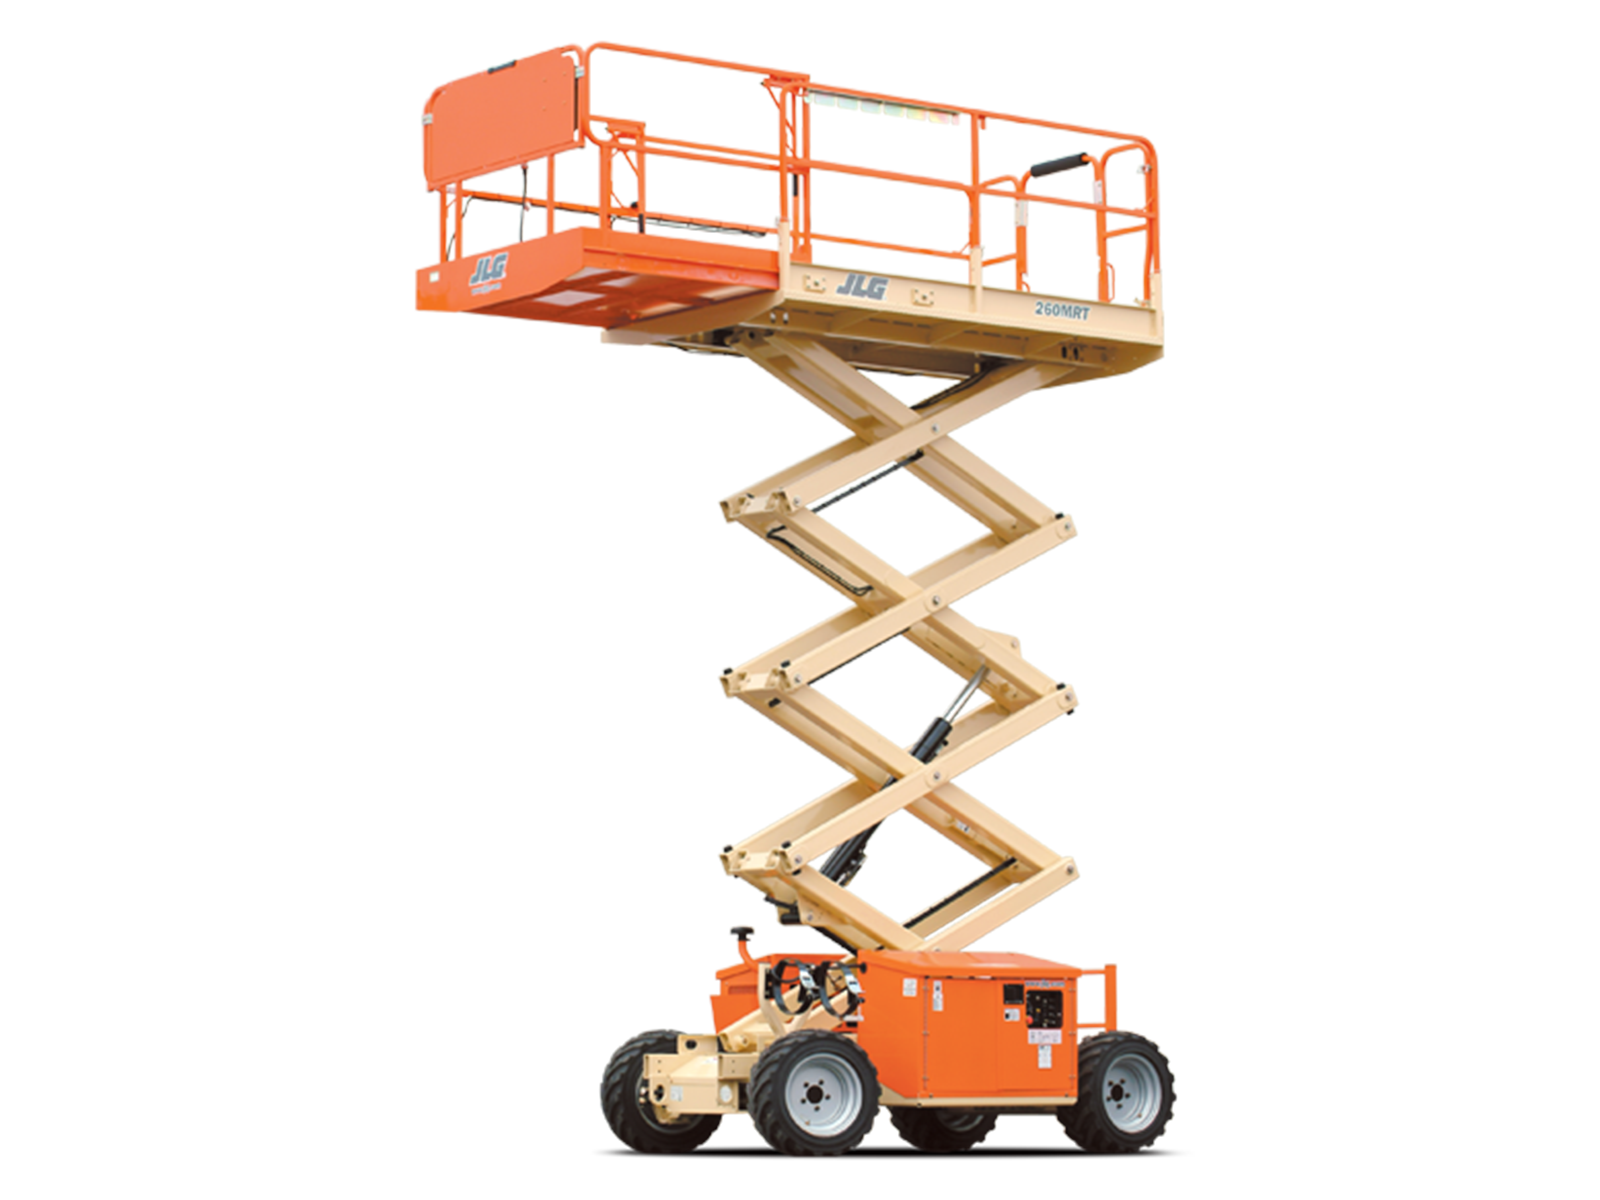 260MRT Engine Powered Scissor Lift.